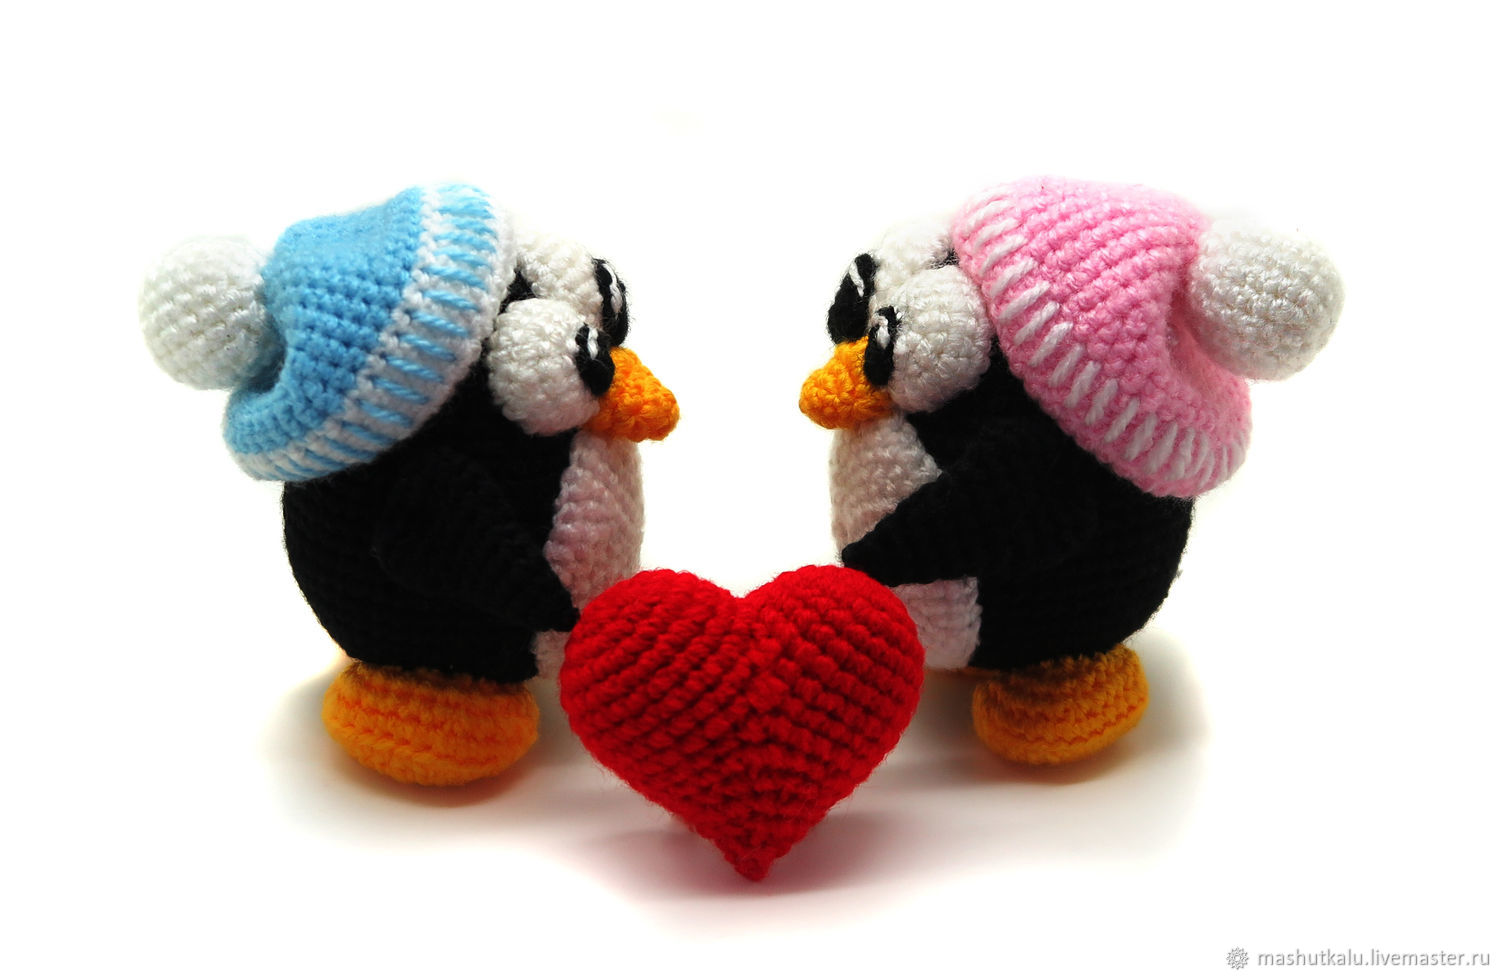 Penguins Sledge crochet toy pattern, amigurumi penguins tutorial ...